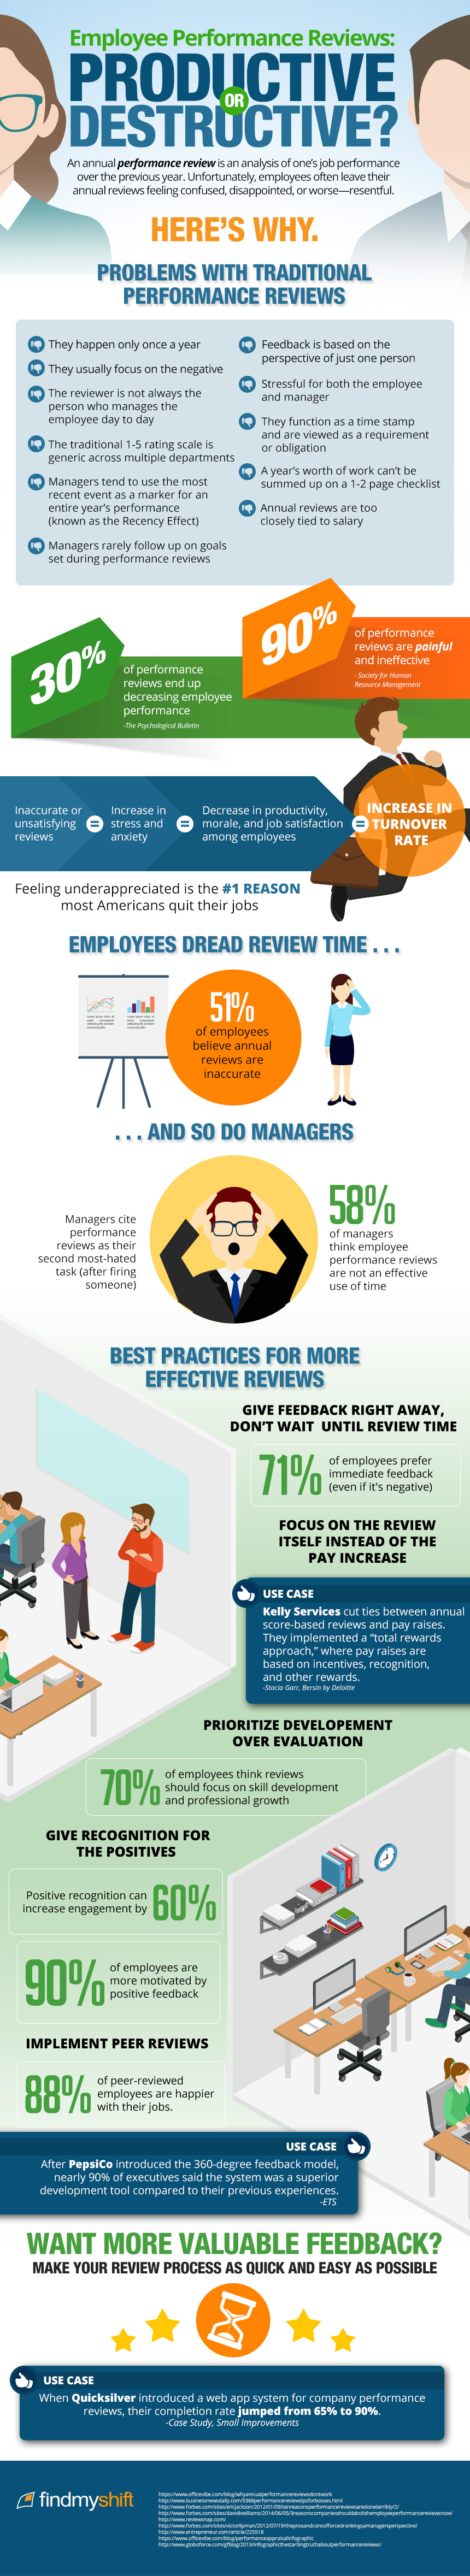 Employee Performance Reviews: Productive or Destructive?